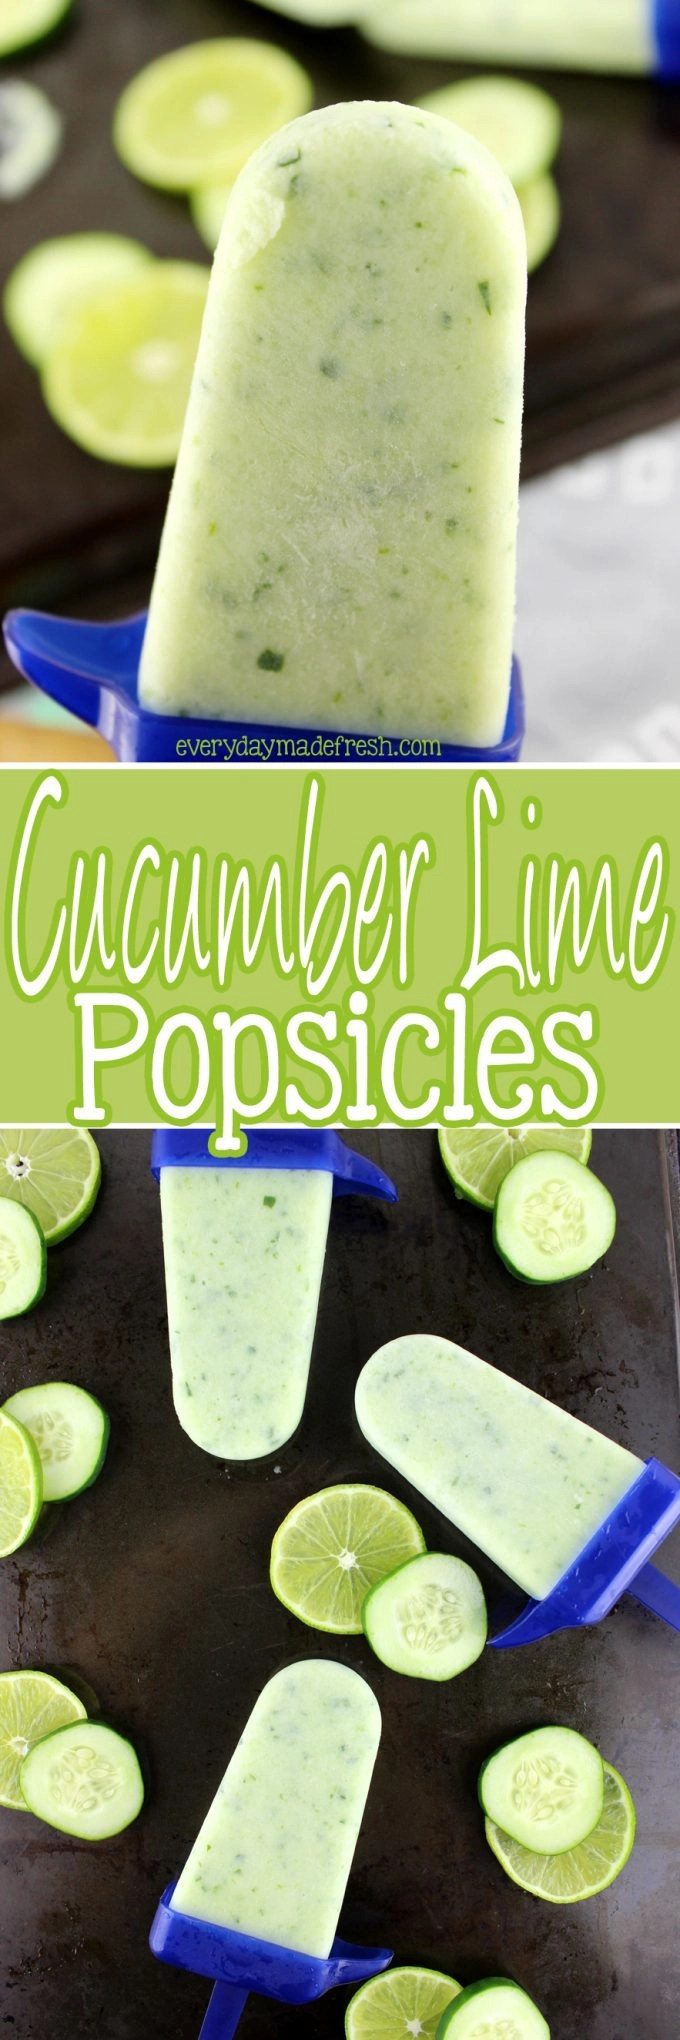 Summertime calls for refreshing popsicles, and nothing is more refreshing than these Cucumber Lime Popsicles!   EverydayMadeFresh.com